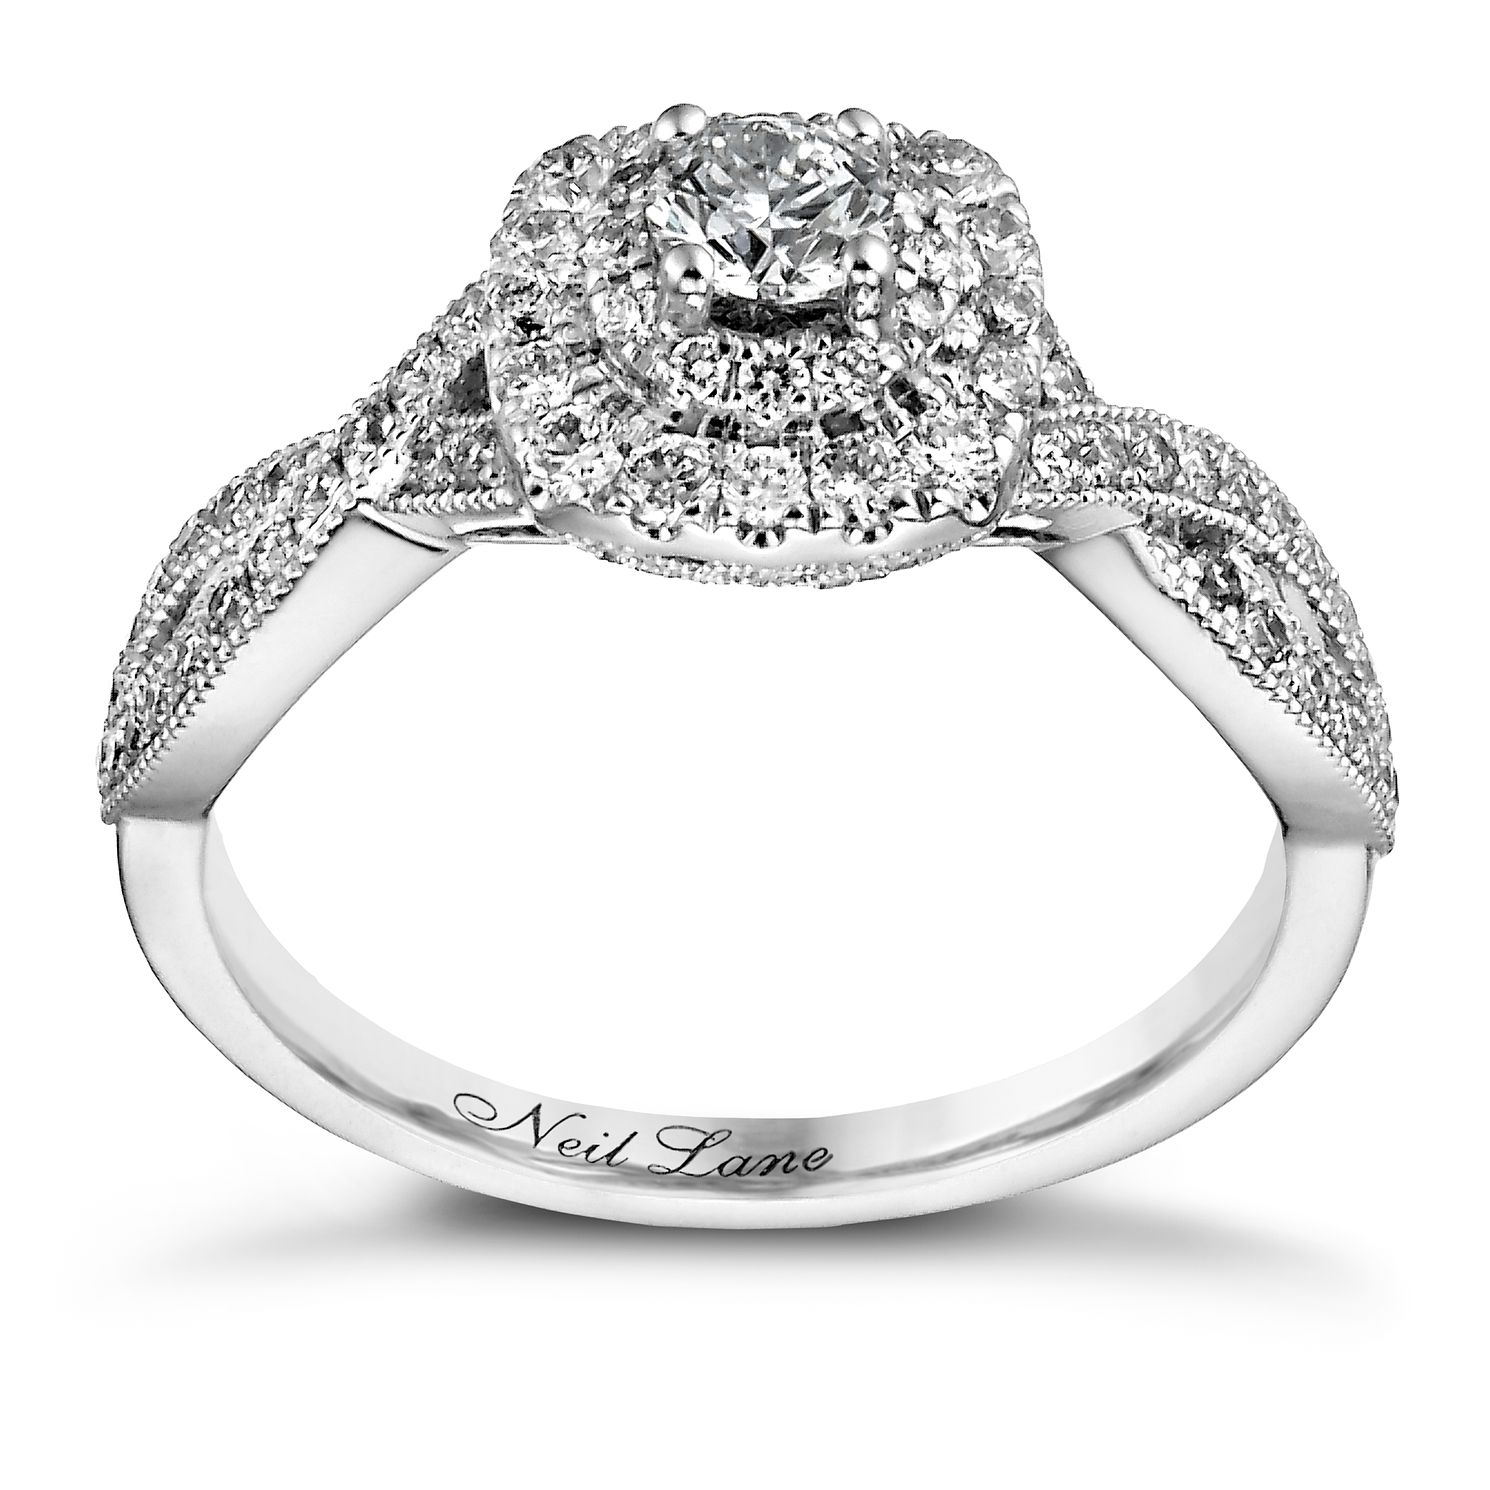 Neil Lane 14ct White Gold 0.75ct Diamond Double Halo Ring   Product Number  1351052